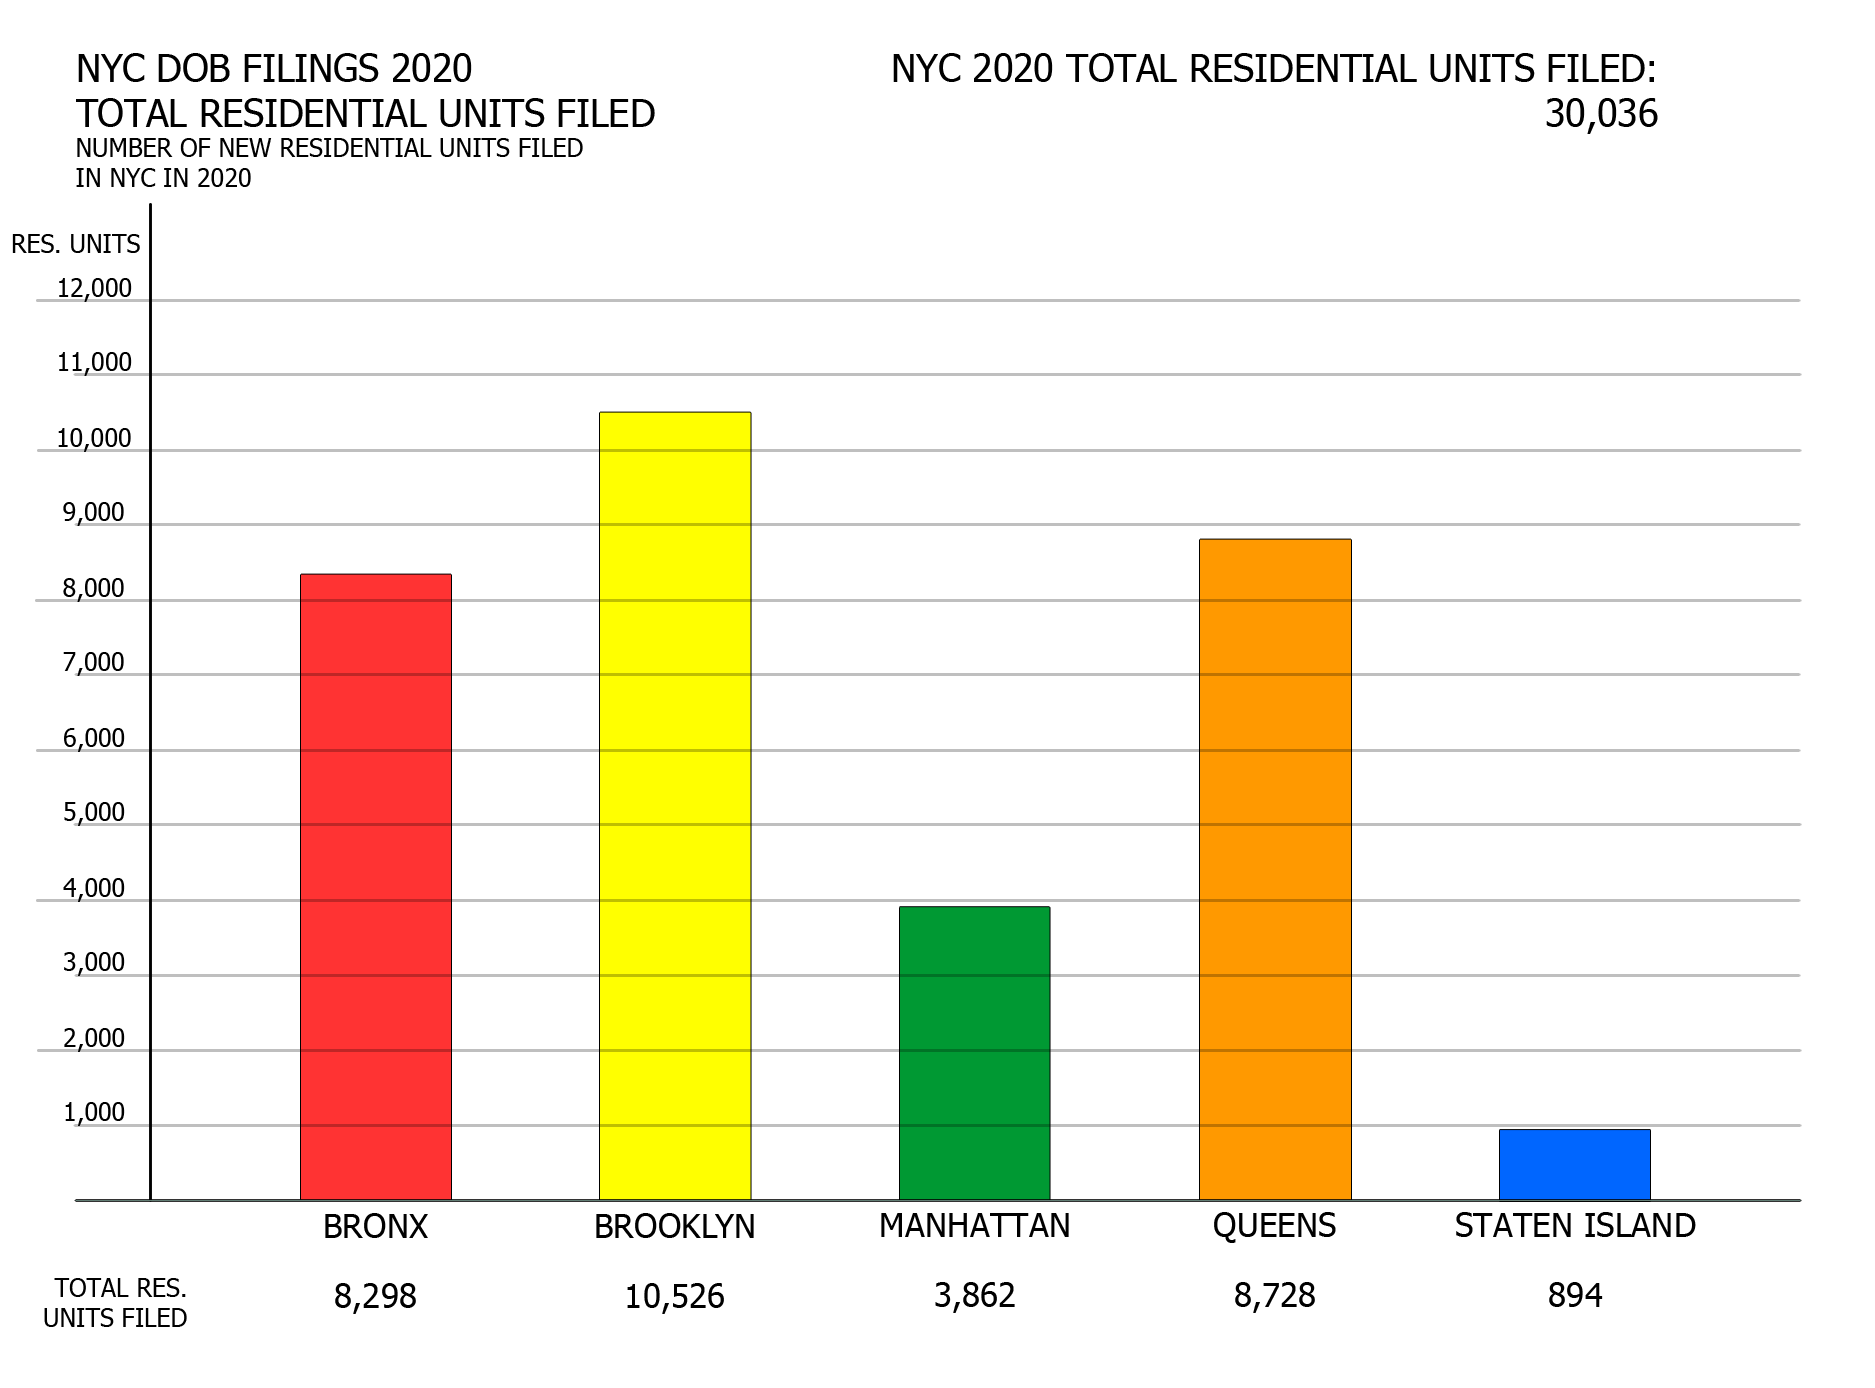 NYC DOB filings in 2020 by residential units filed. Credit: Vitali Ogorodnikov